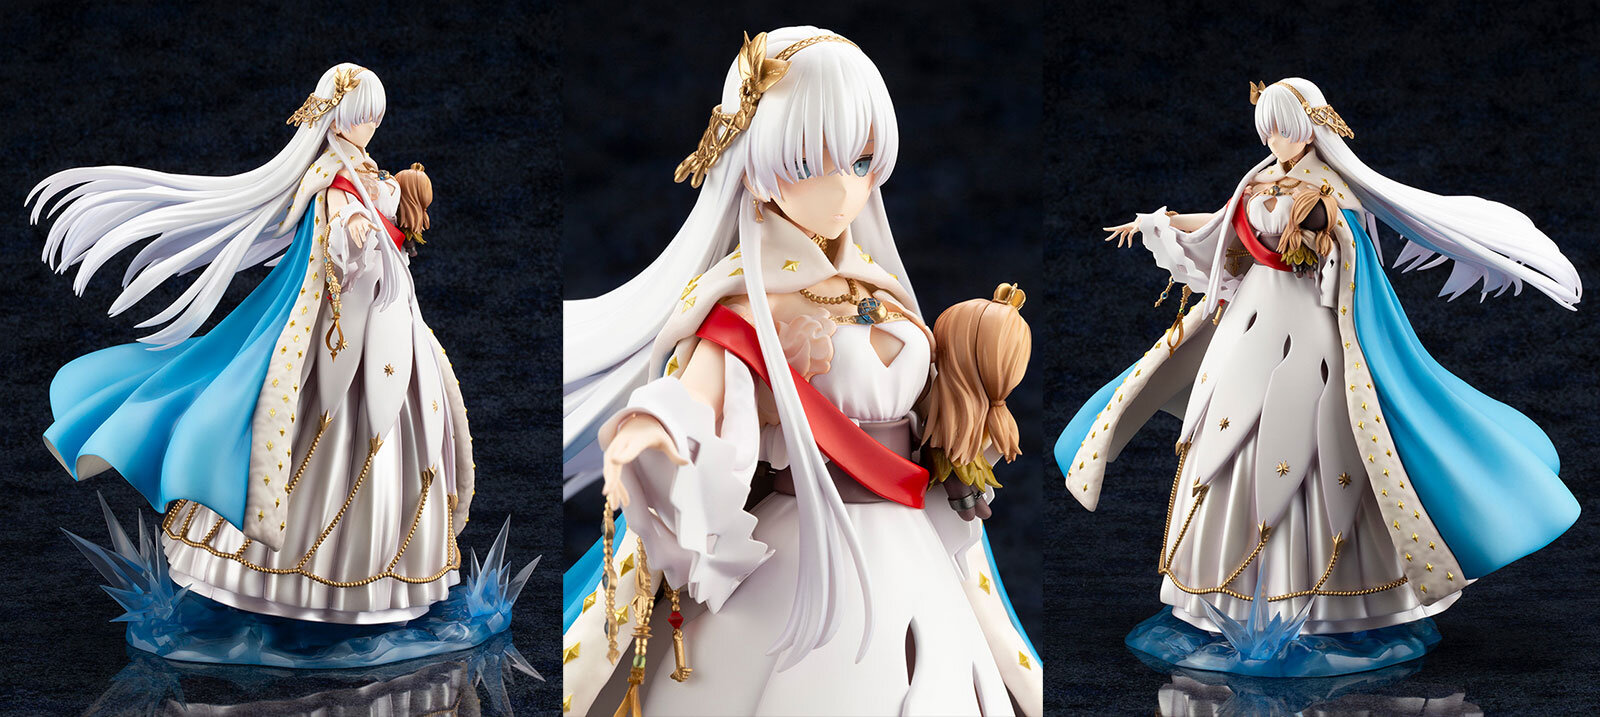 News Fate Grand Order Caster Anastasia Figure By Kotobukiya Otakus Geeks For fate / grand order on the ios (iphone/ipad), a gamefaqs message board topic titled rabbit's reviews #102: news fate grand order caster anastasia